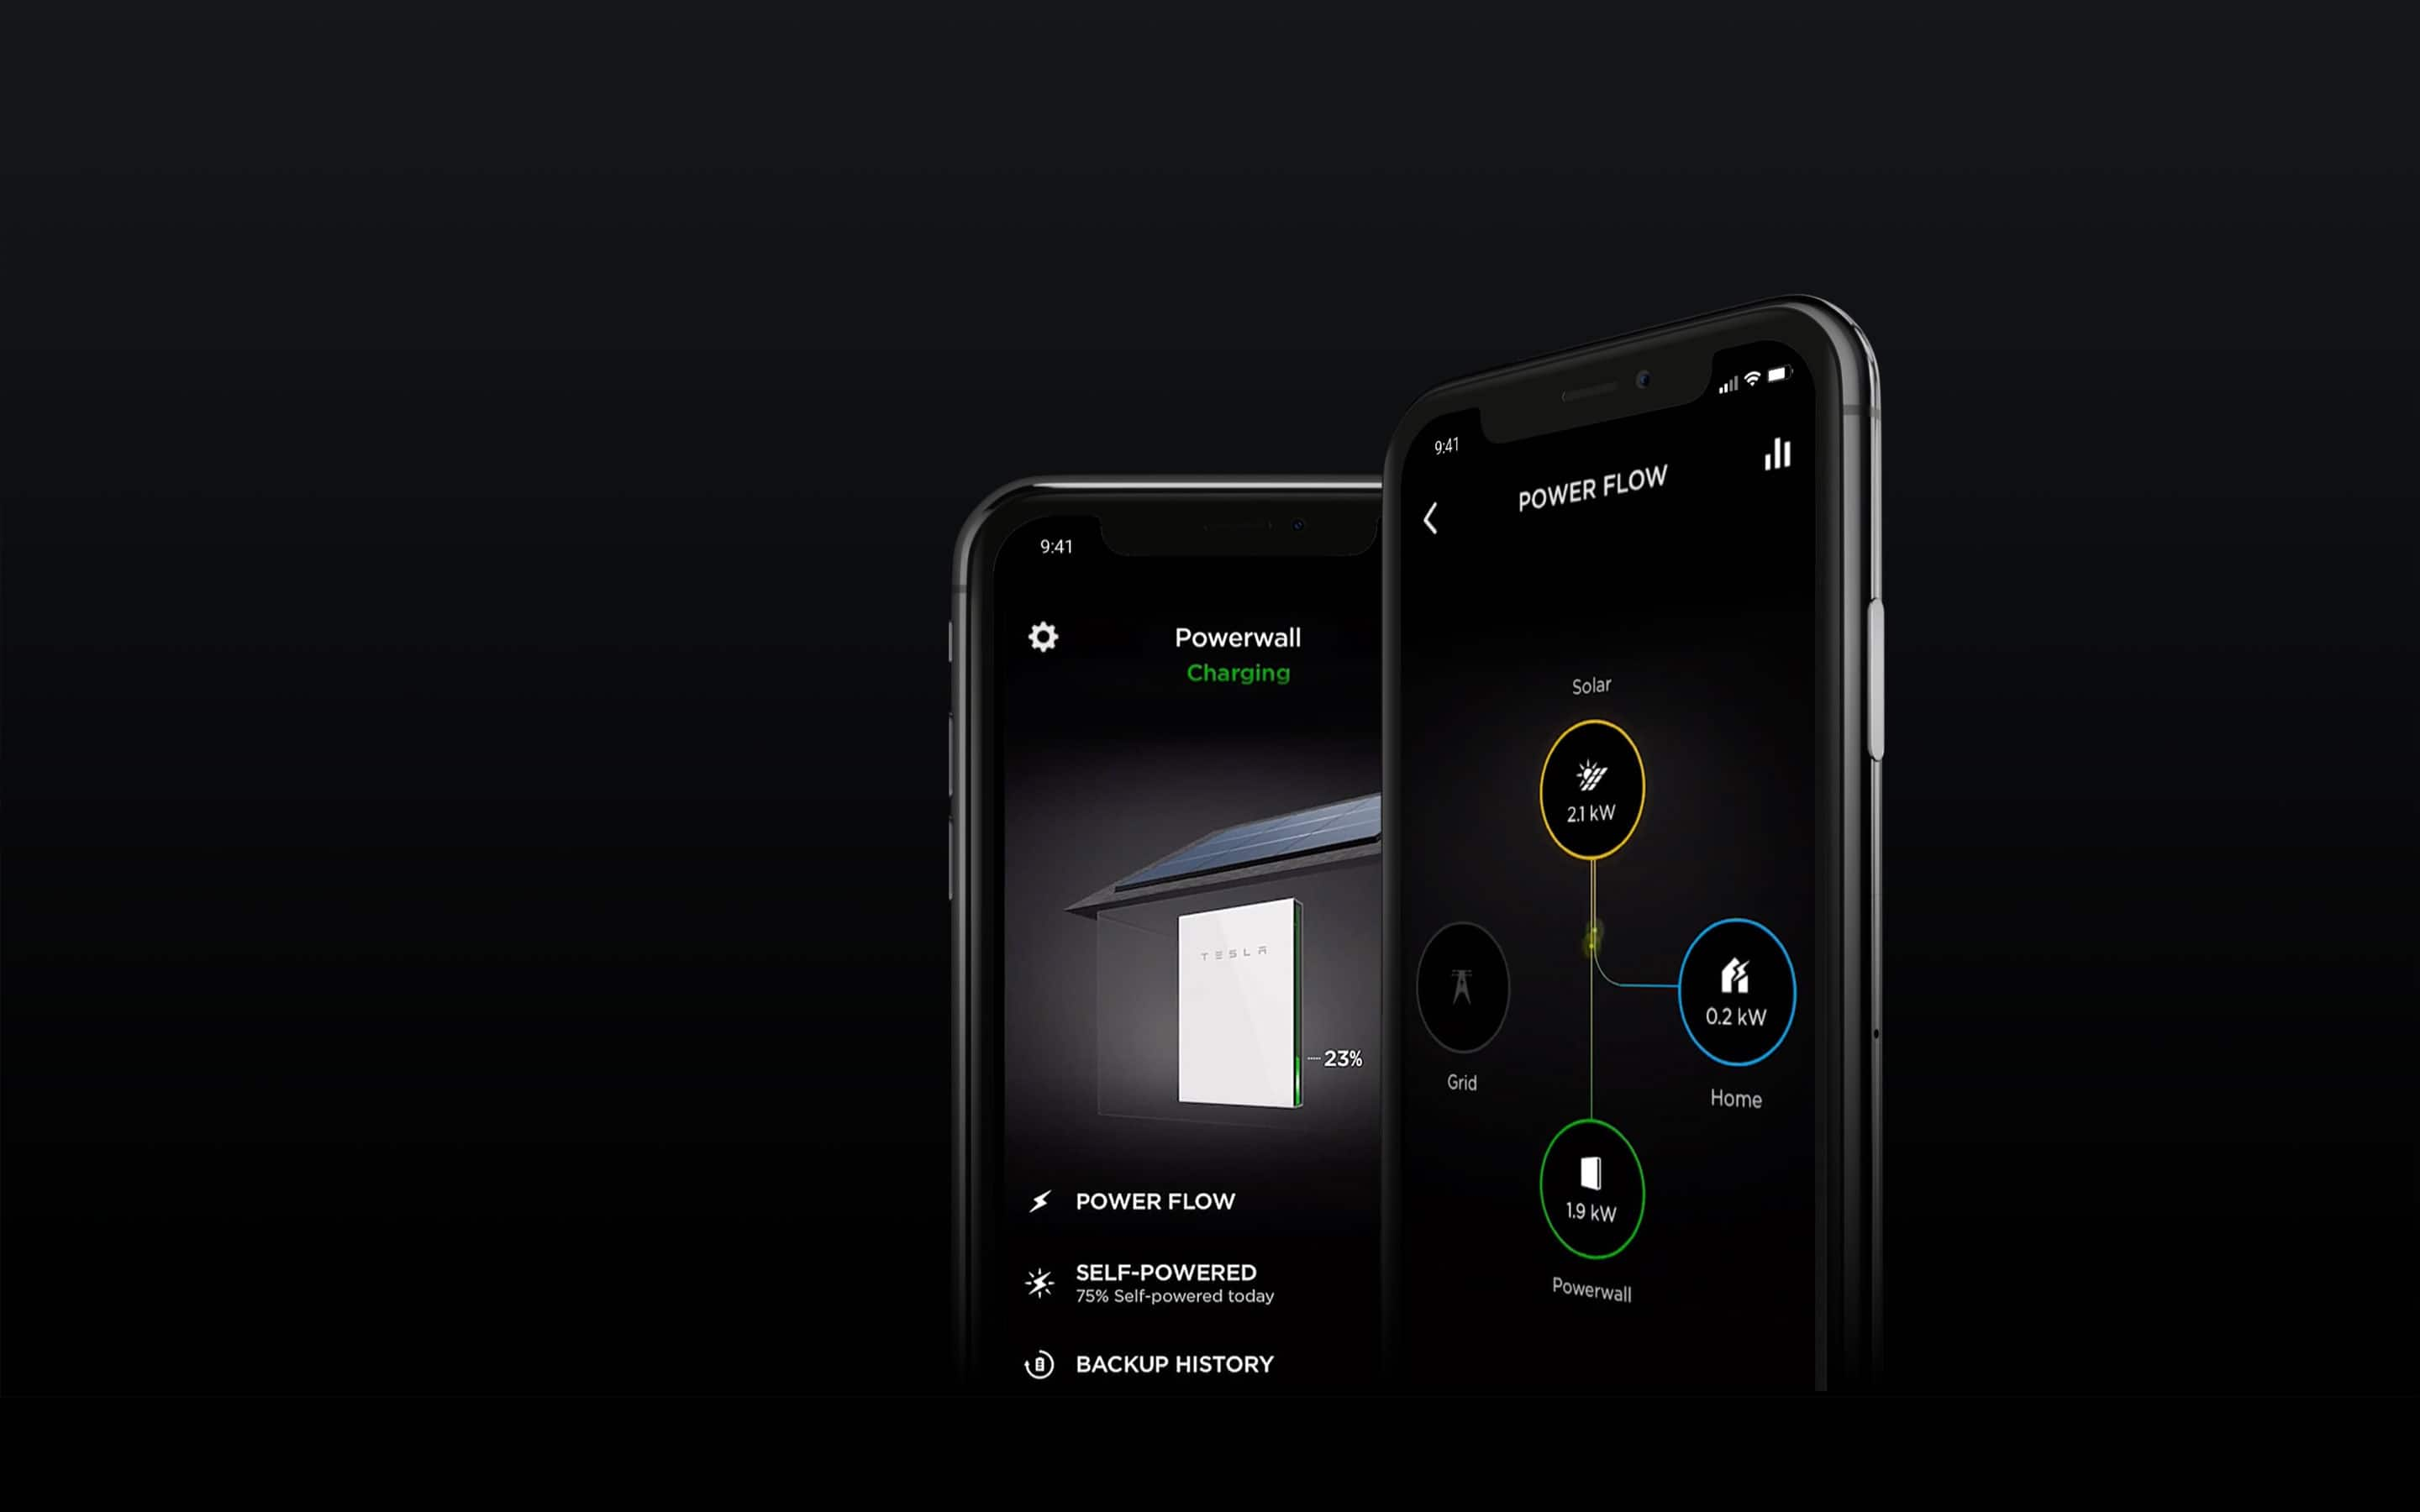 Images de l'application mobile Powerwall